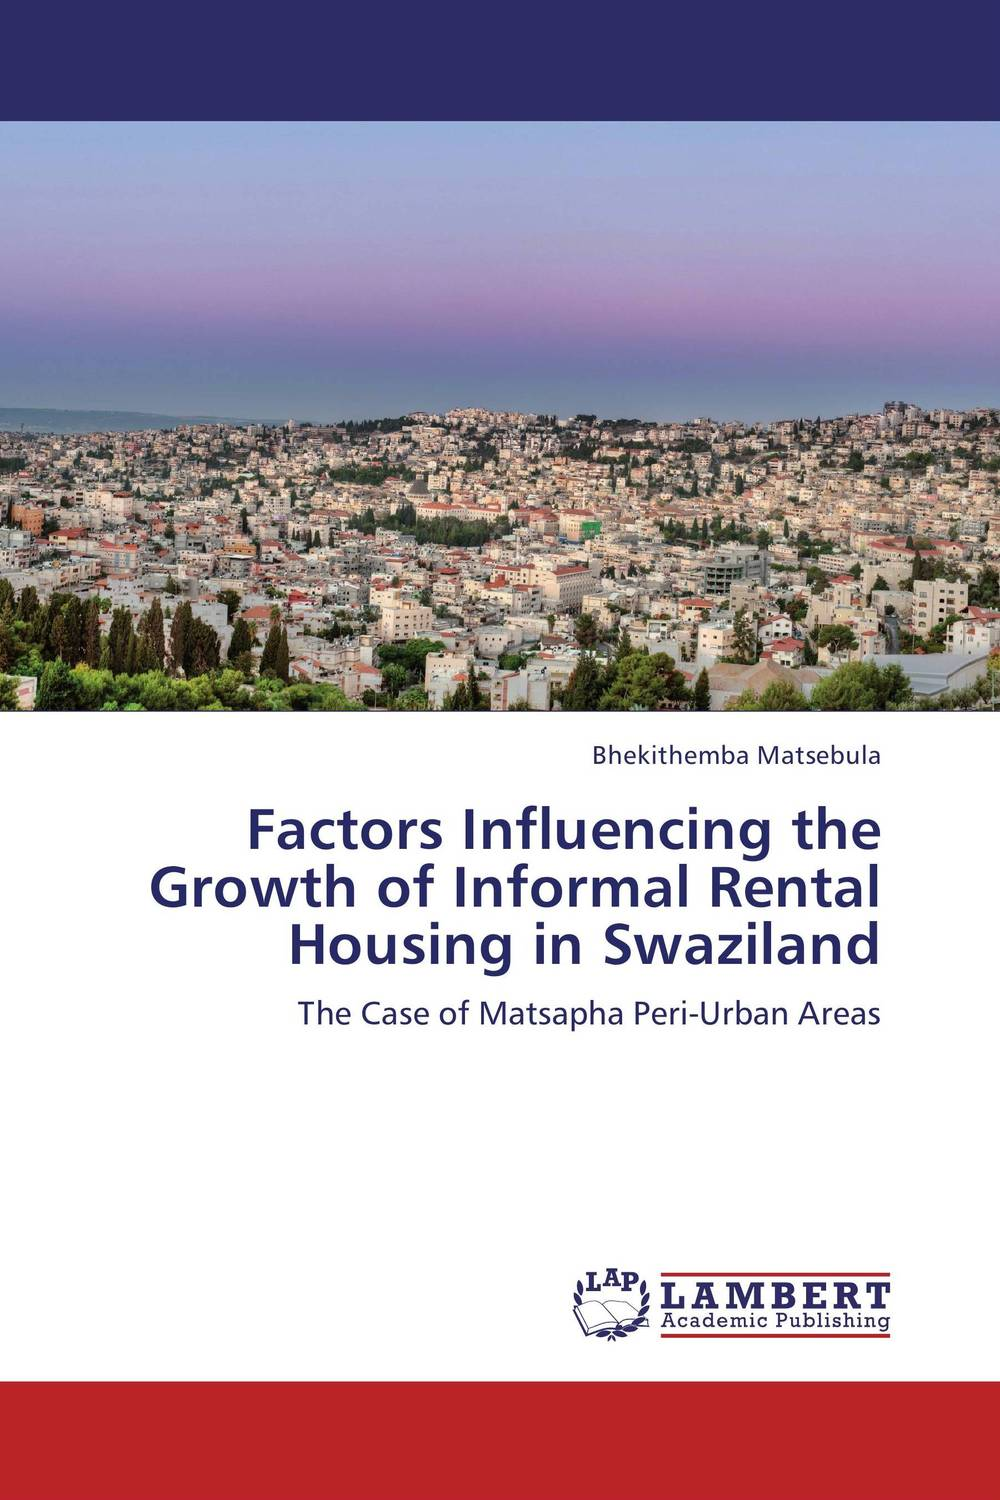 Factors Influencing the Growth of Informal Rental Housing in Swaziland factors influencing the growth of informal rental housing in swaziland